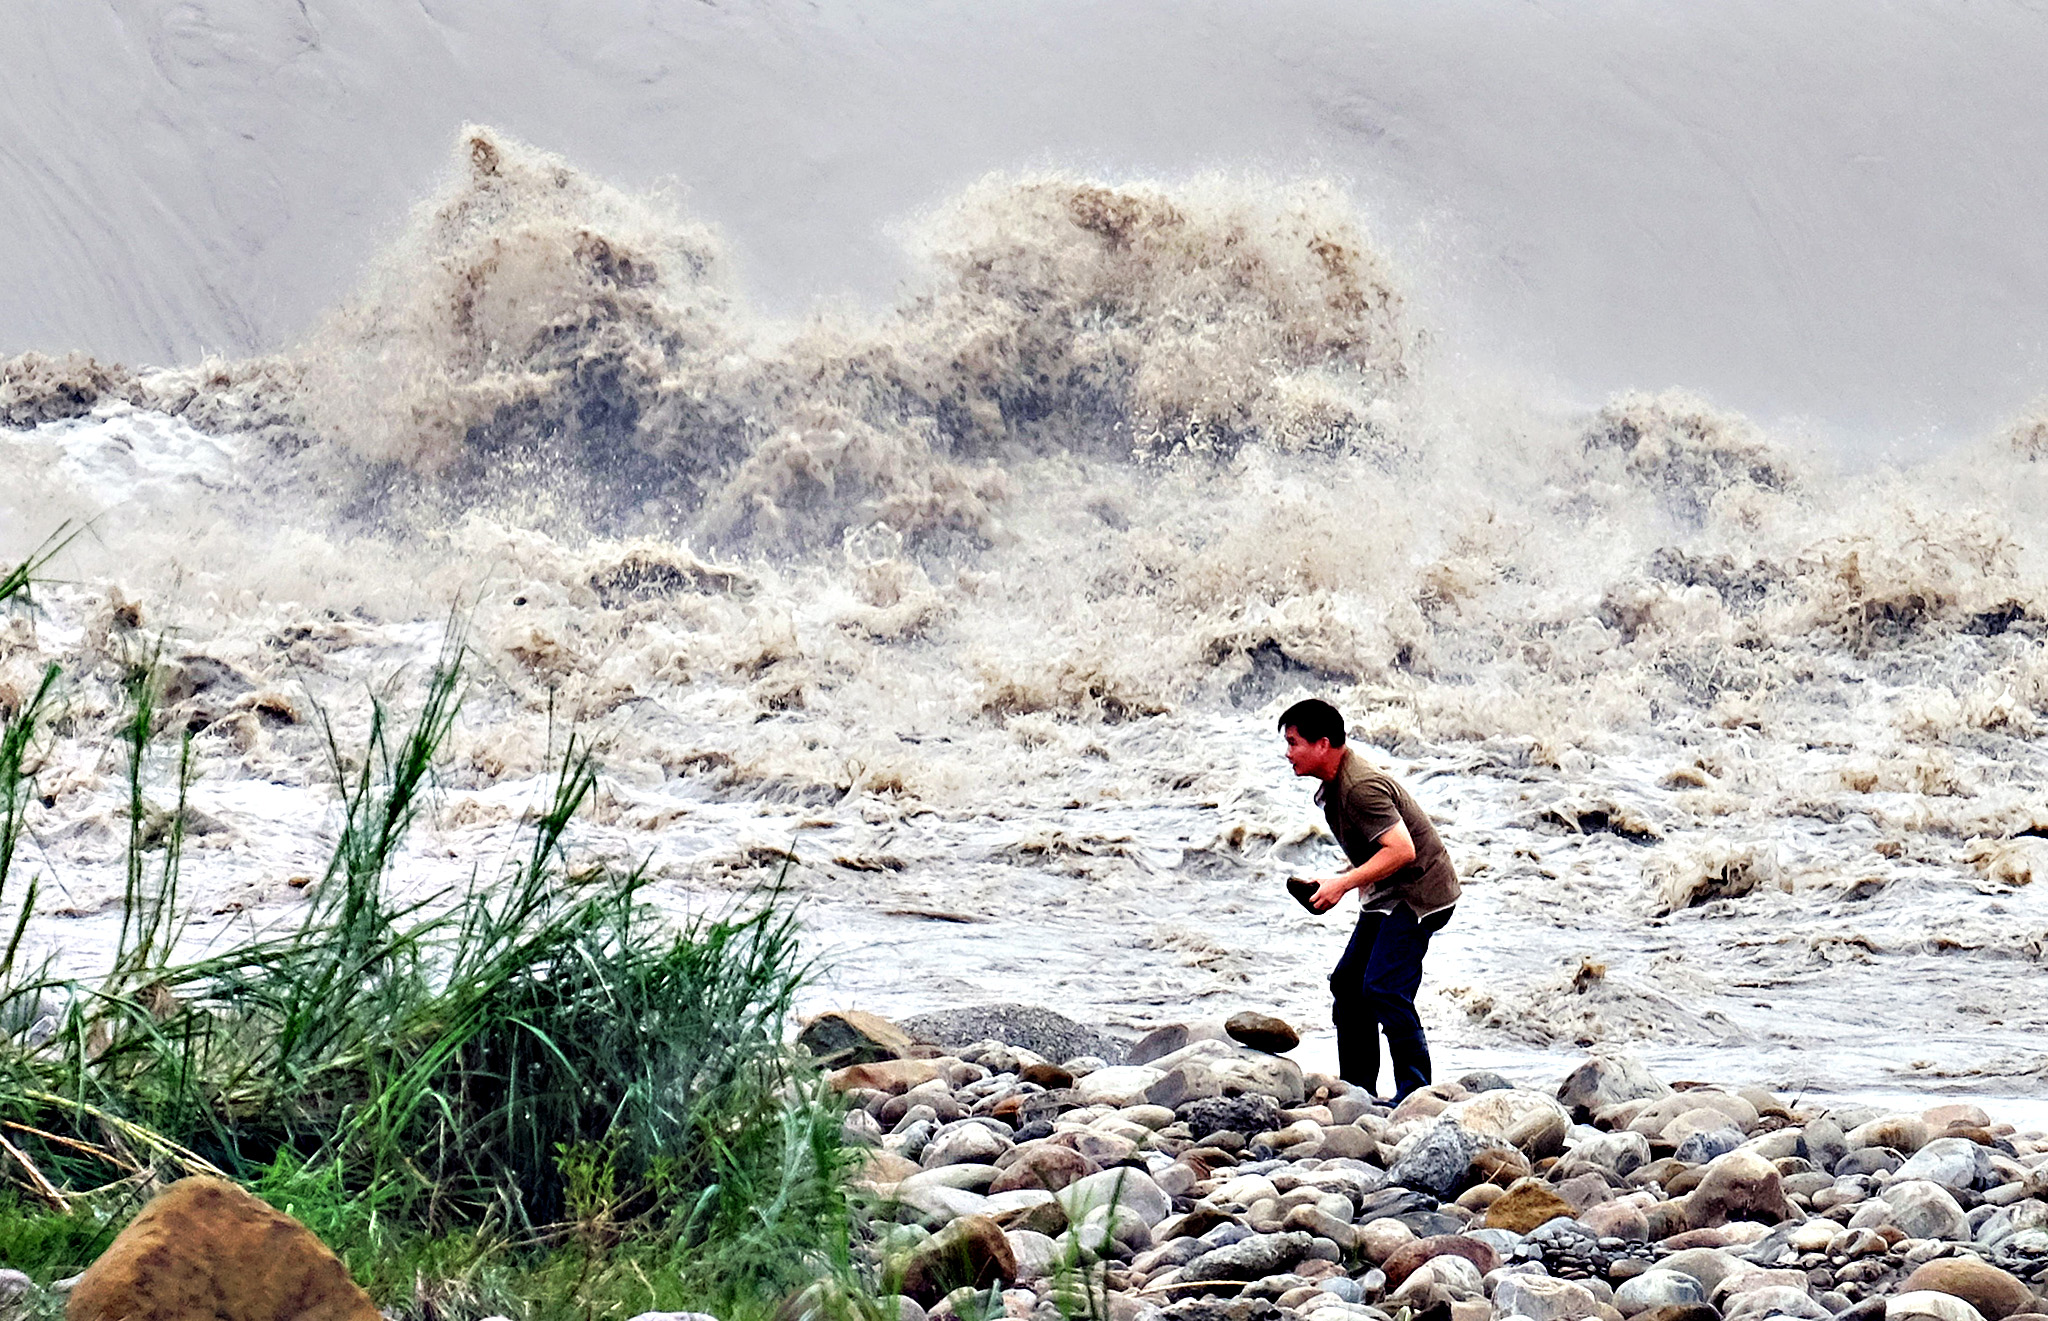 A local resident collects stones from the Xindian river after Typhoon Dujuan passed in the New Taipei City on September 29, 2015. Super typhoon Dujuan killed two and left more than 300 injured in Taiwan before making landfall in China.